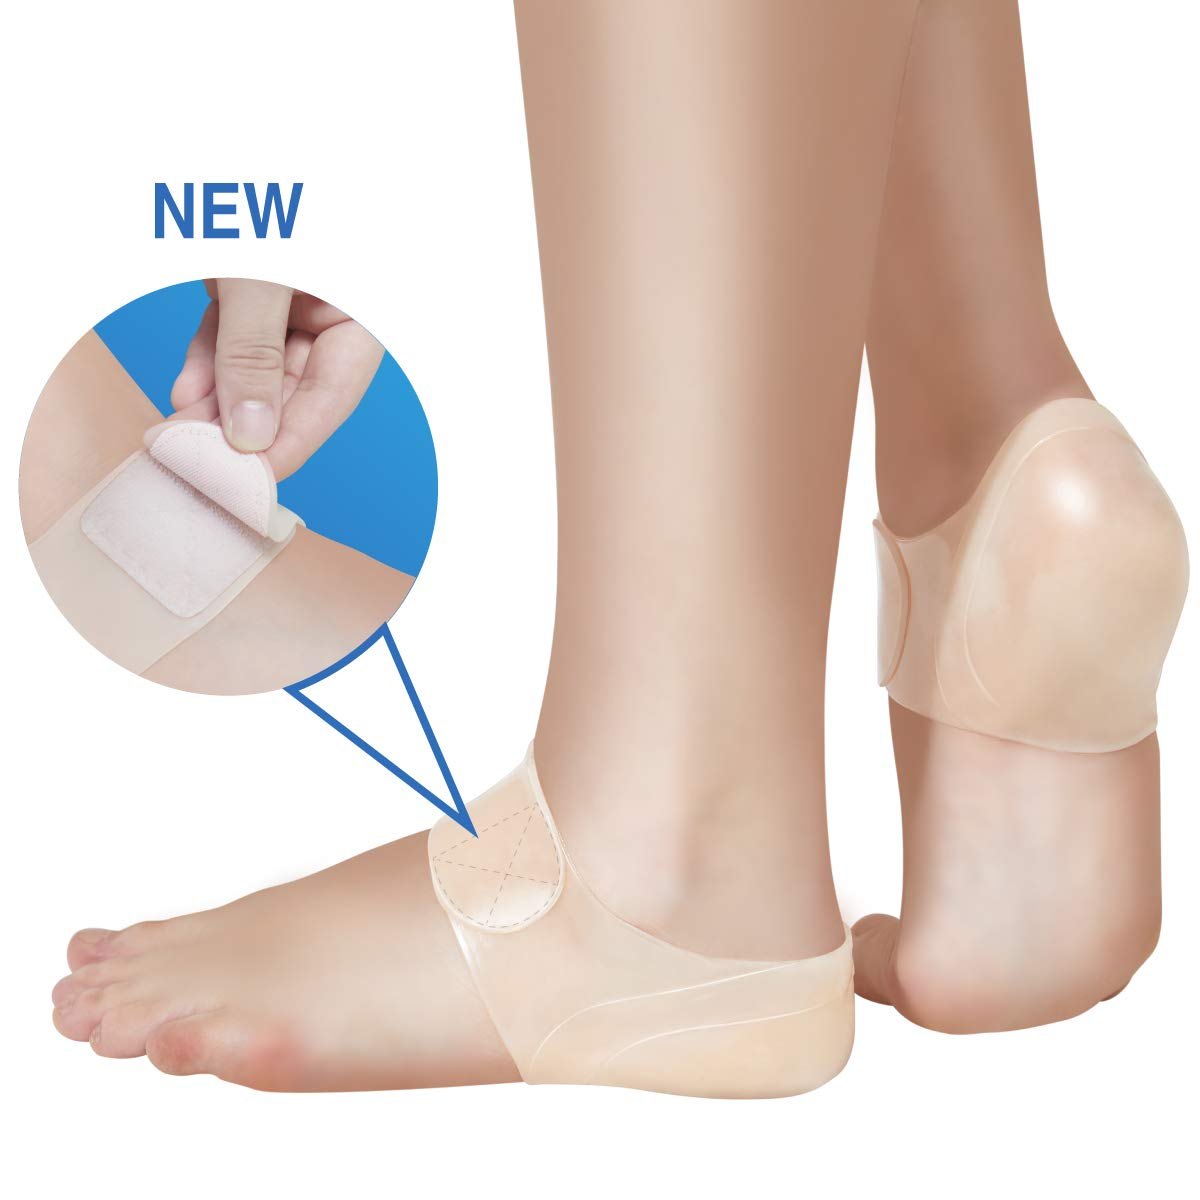 TENMAND Adjustable Heel Protectors- Silicone Gel Heel Pads Cushion Cups for Bone Spur Heal Dry Cracked Heels Achilles Tendinitis Relief Plantar Fasciitis Inserts for All Size Feet of Men & Women